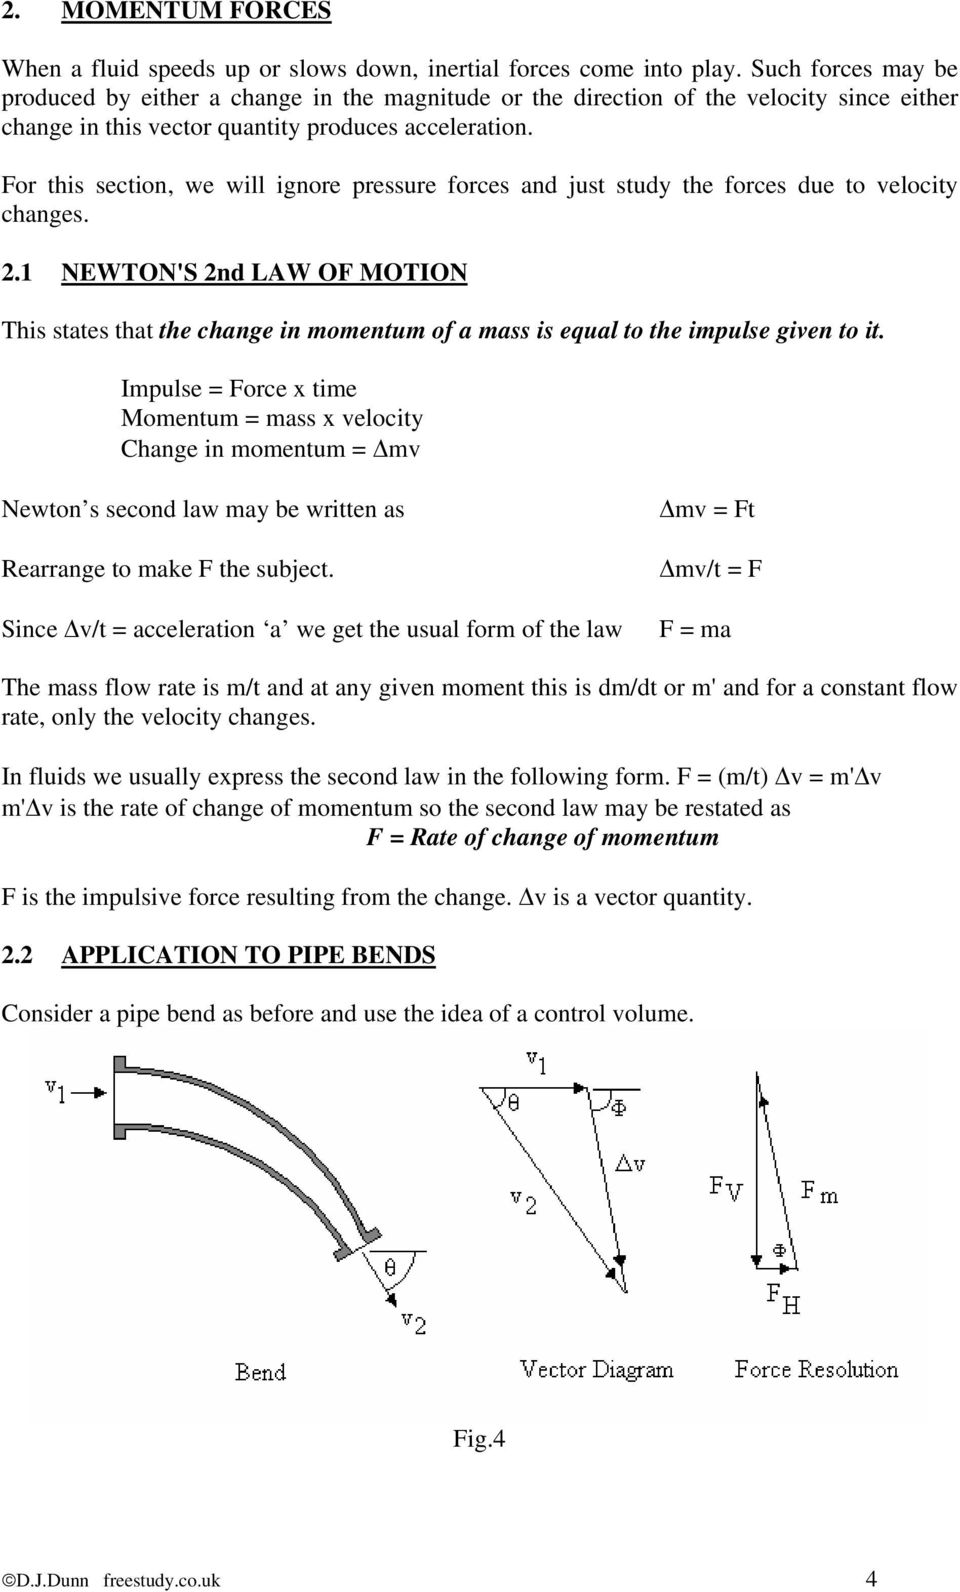 For this section, we will ignore pressure forces and just study the forces due to velocity changes. 2.